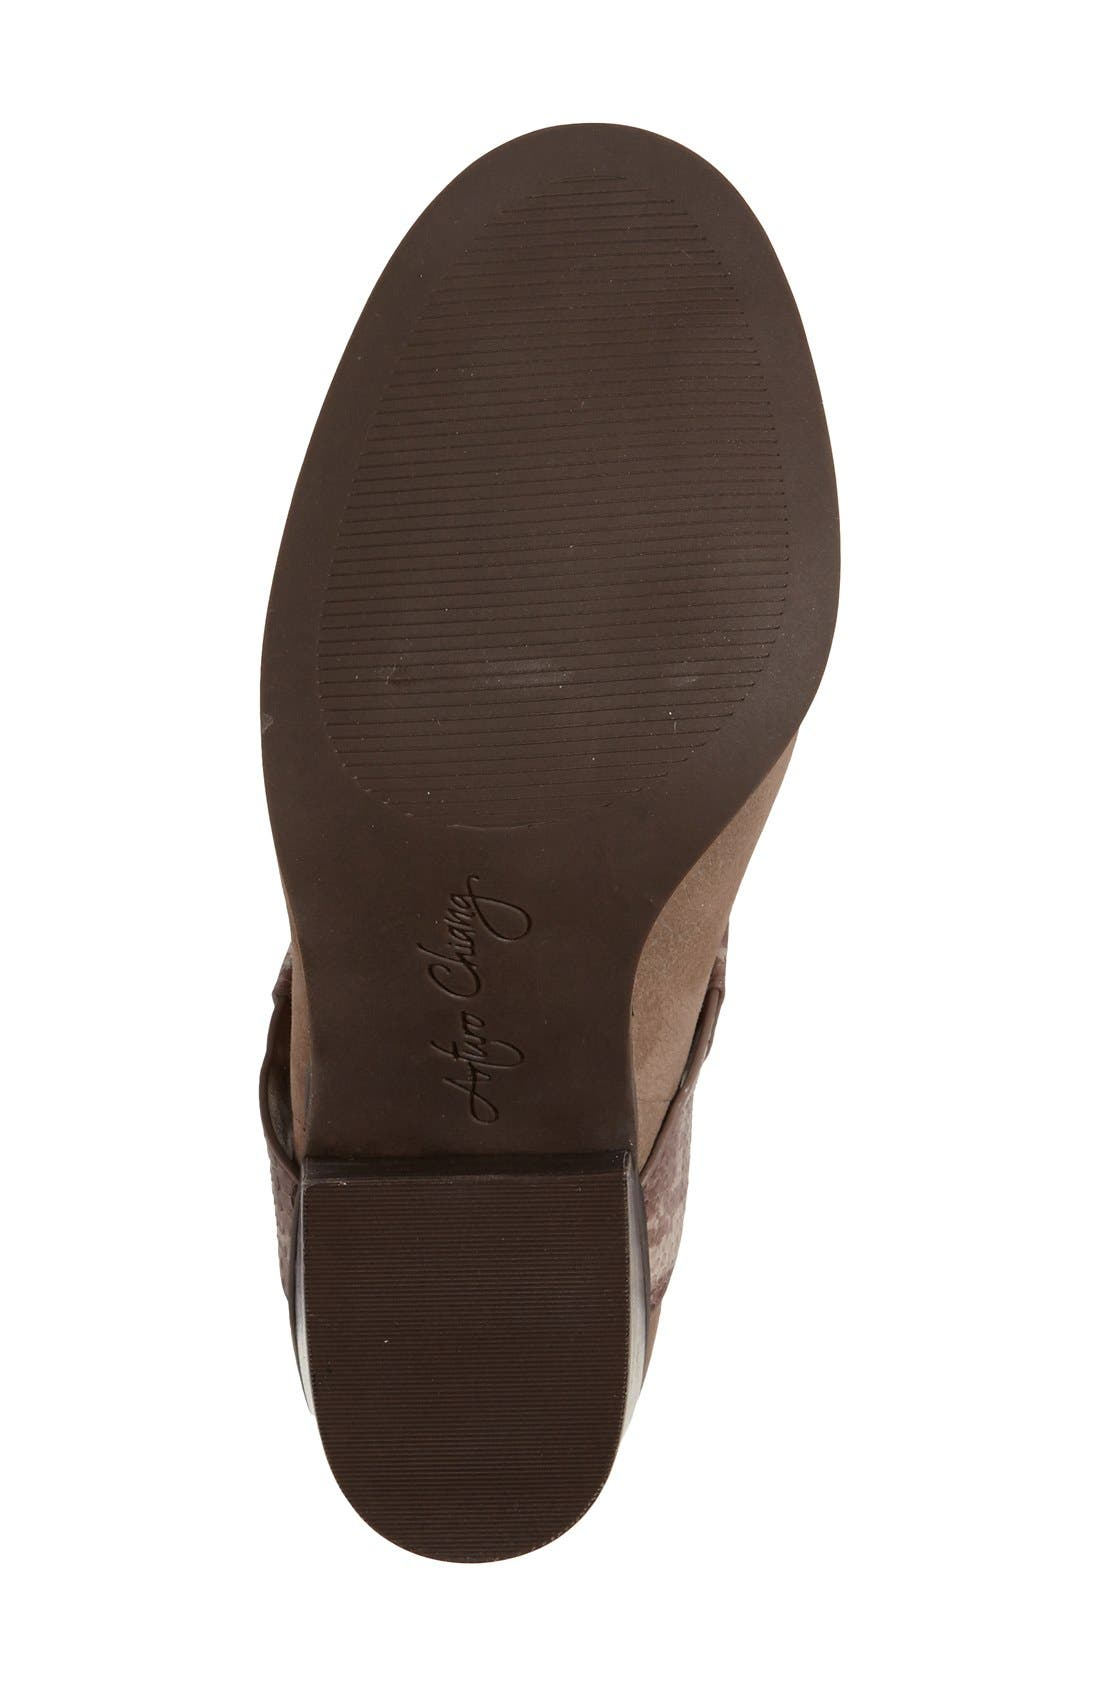 'Caraleigh' Peep Toe Bootie,                             Alternate thumbnail 4, color,                             741